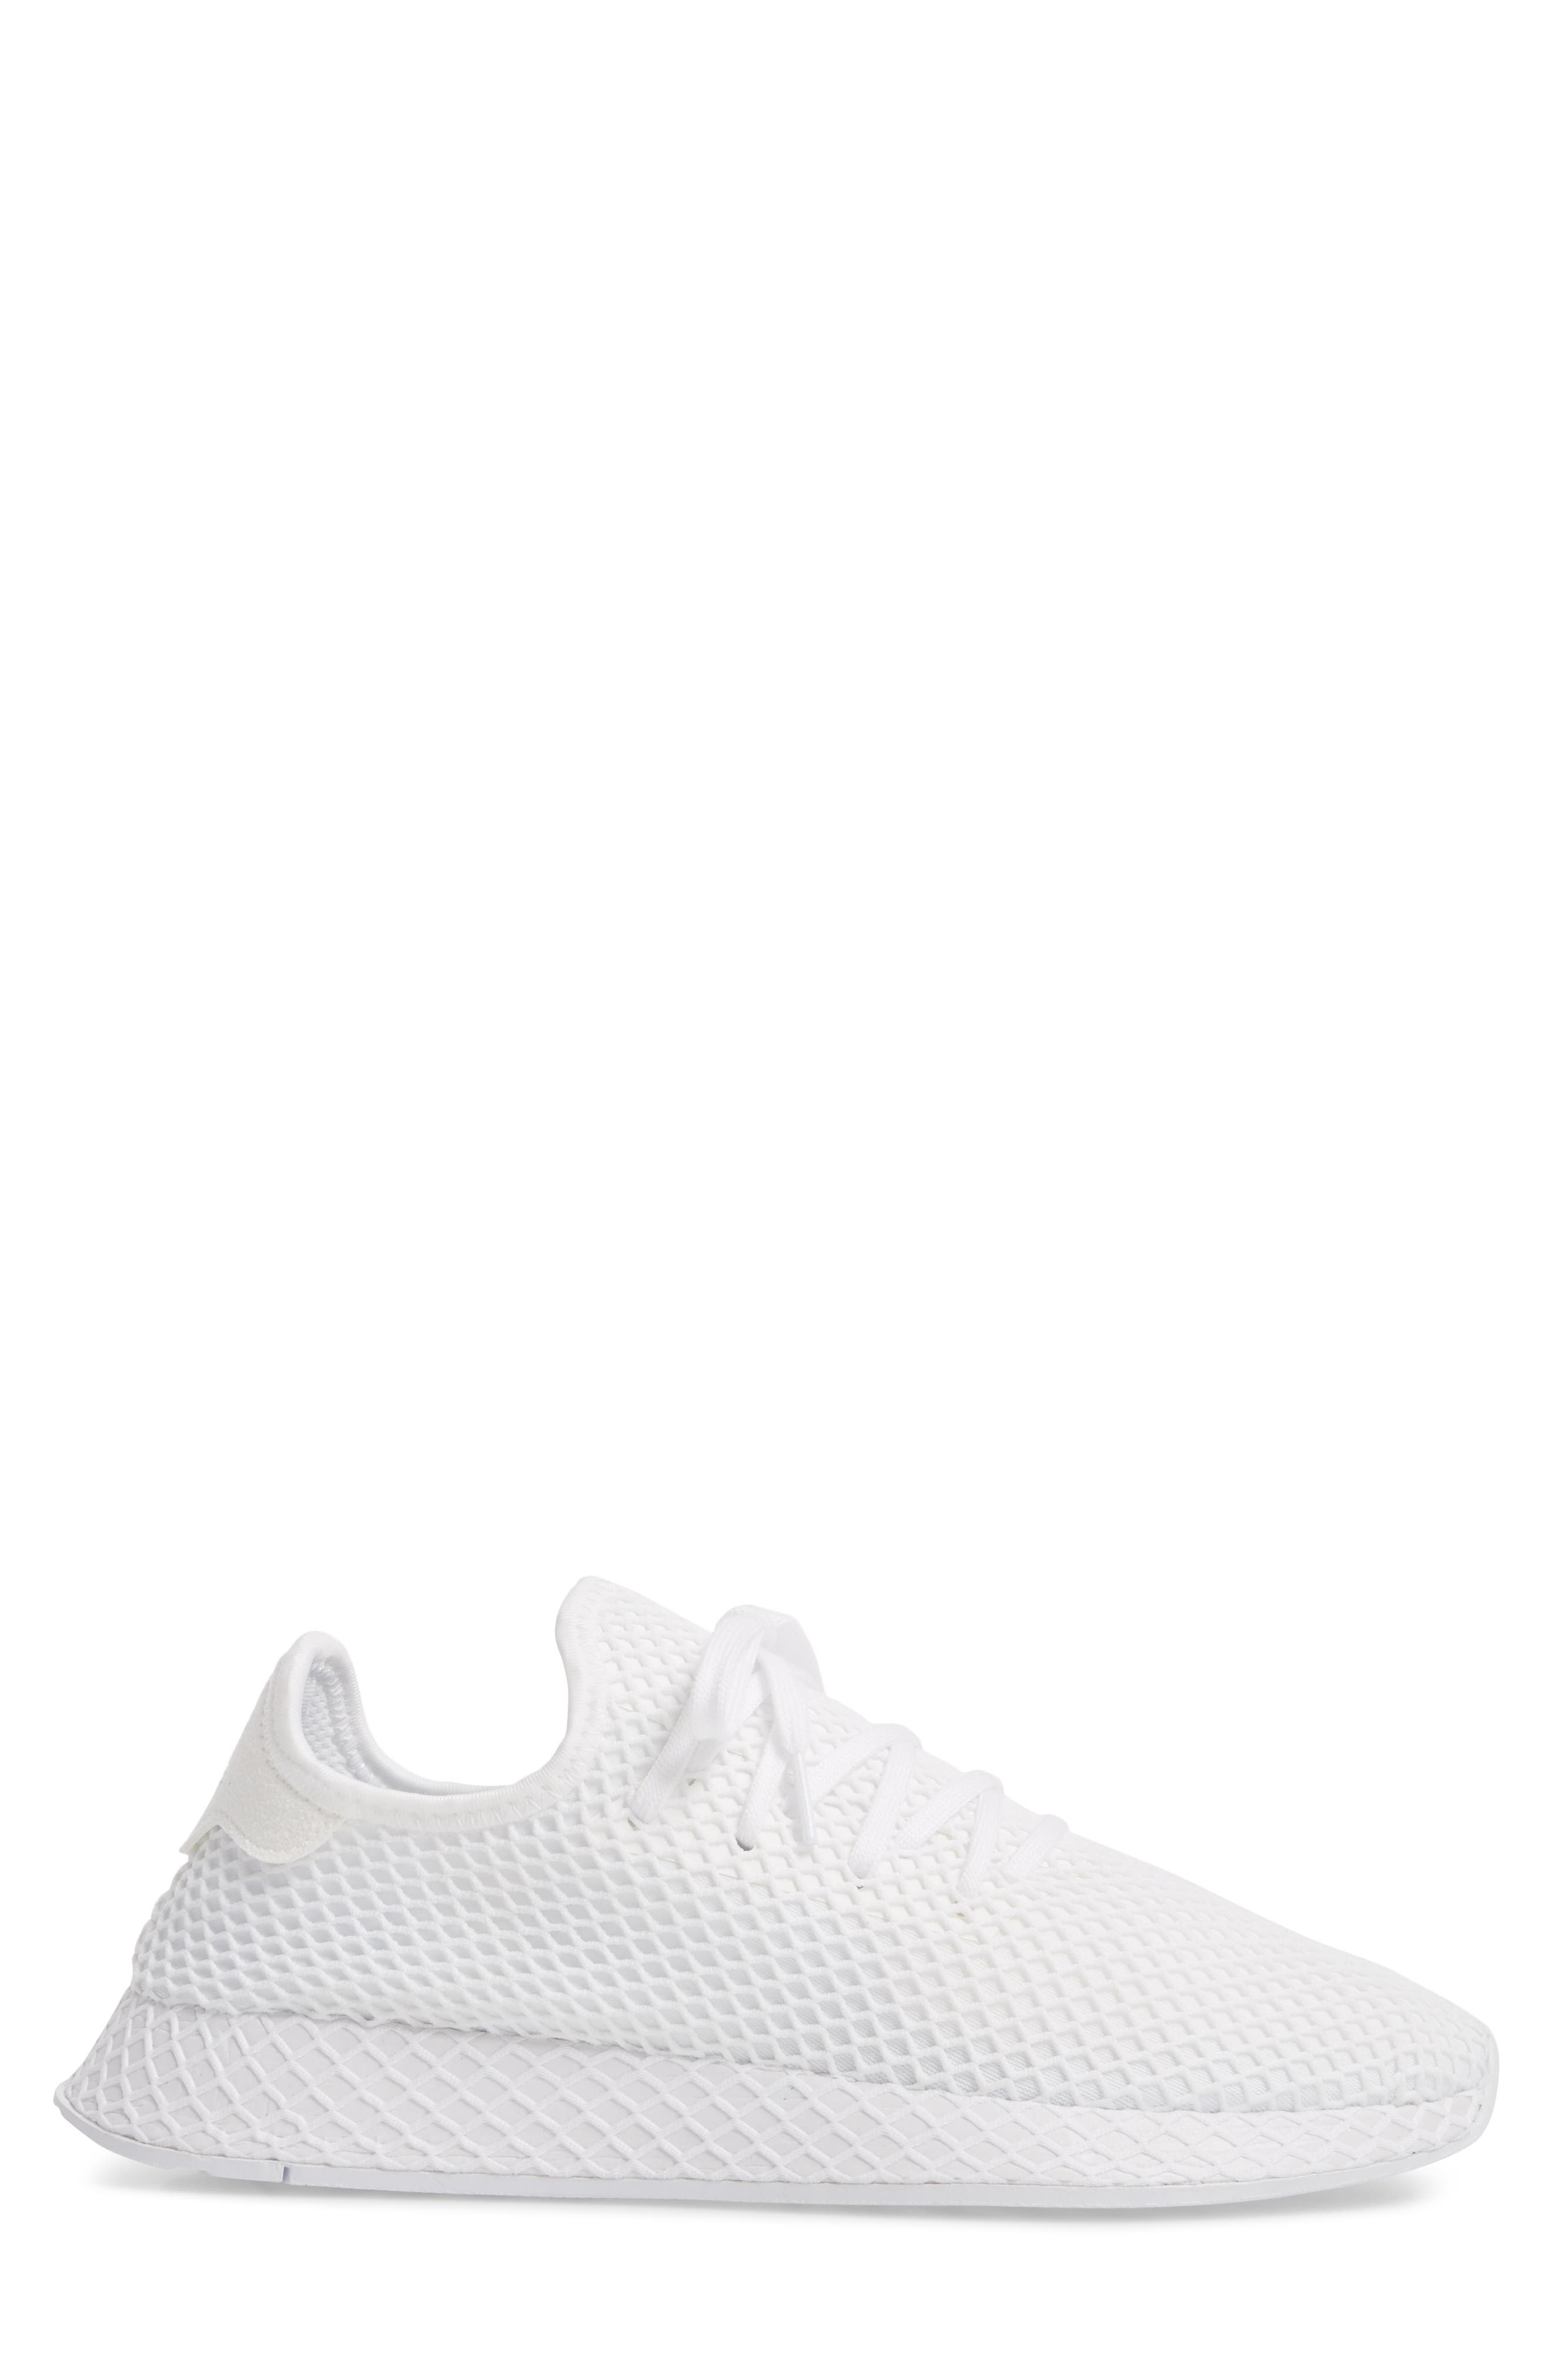 Deerupt Runner Sneaker,                             Alternate thumbnail 3, color,                             100